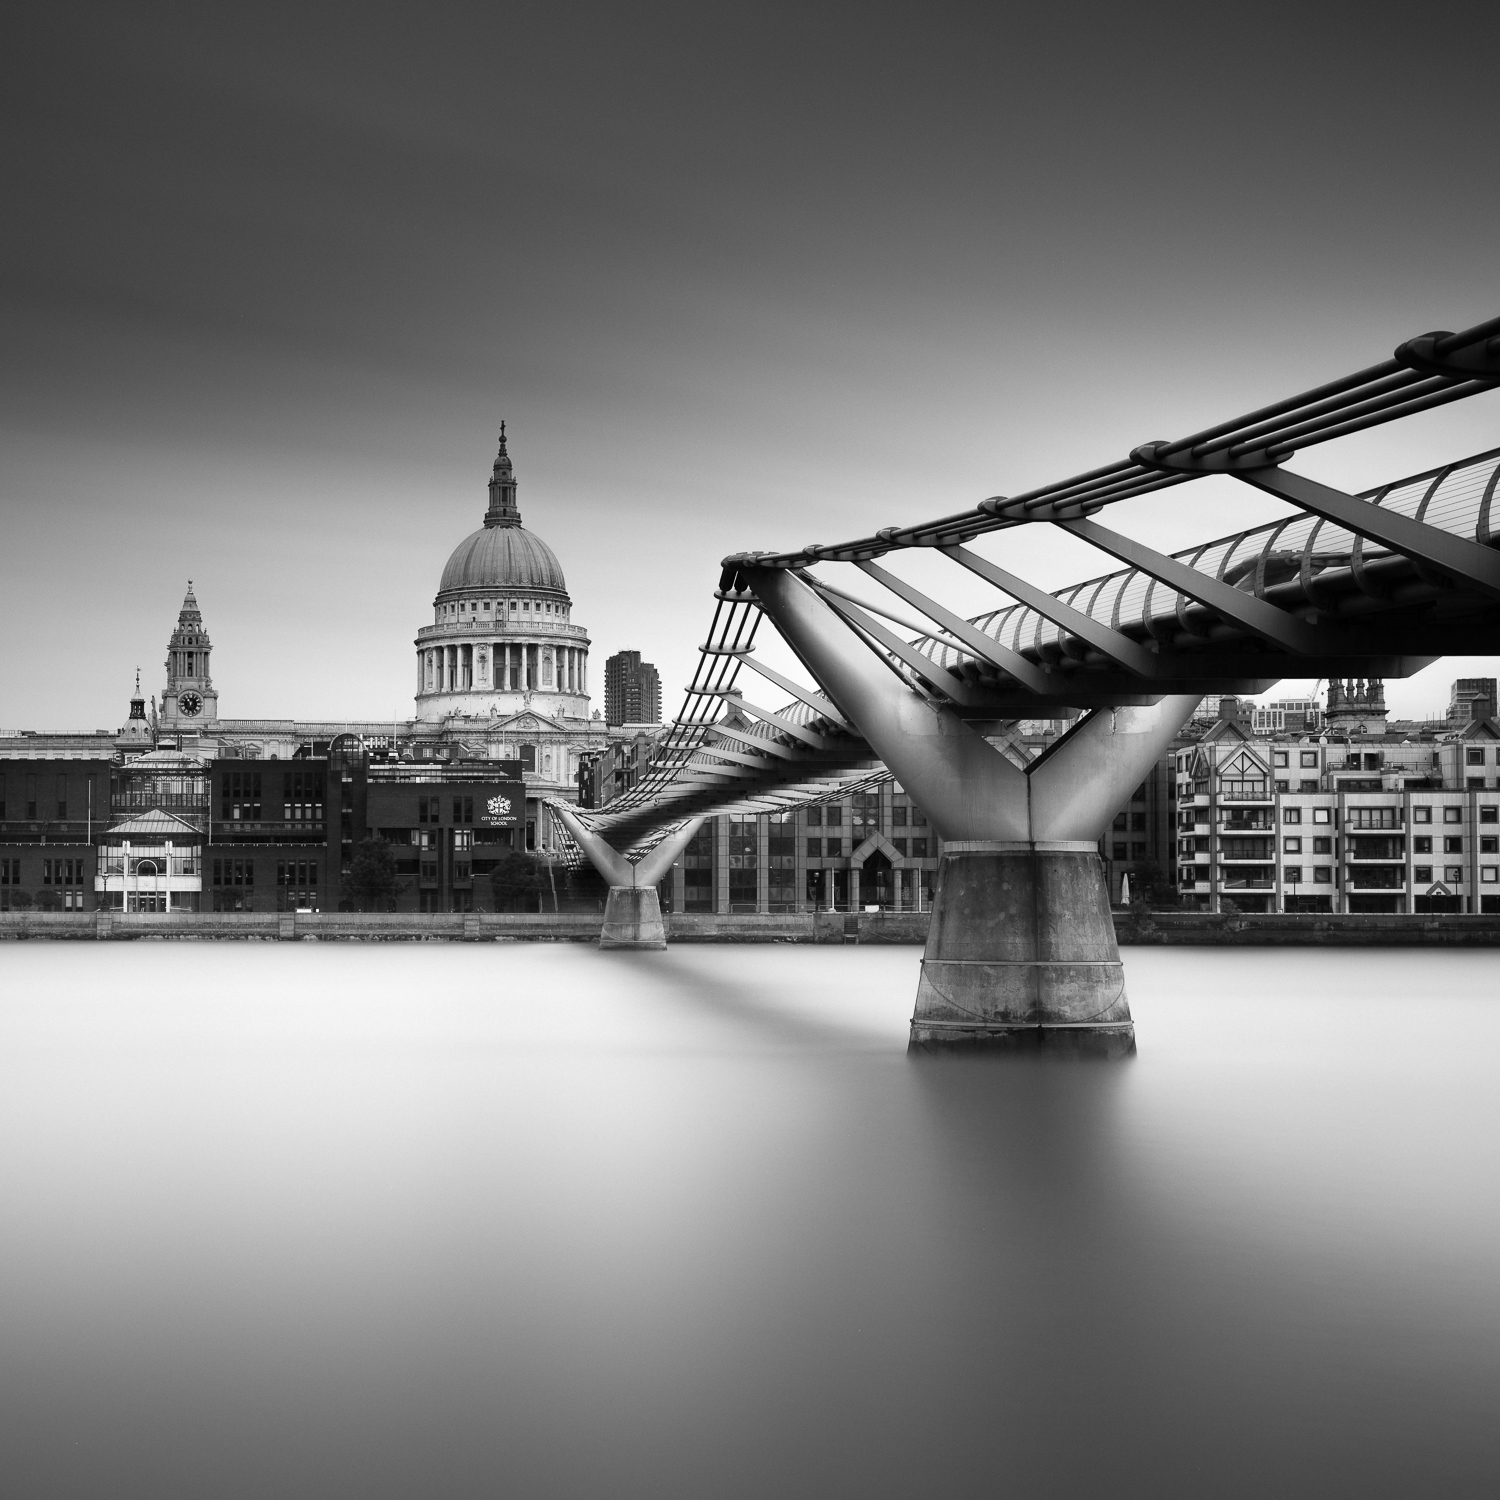 St Pauls, long exposure photo